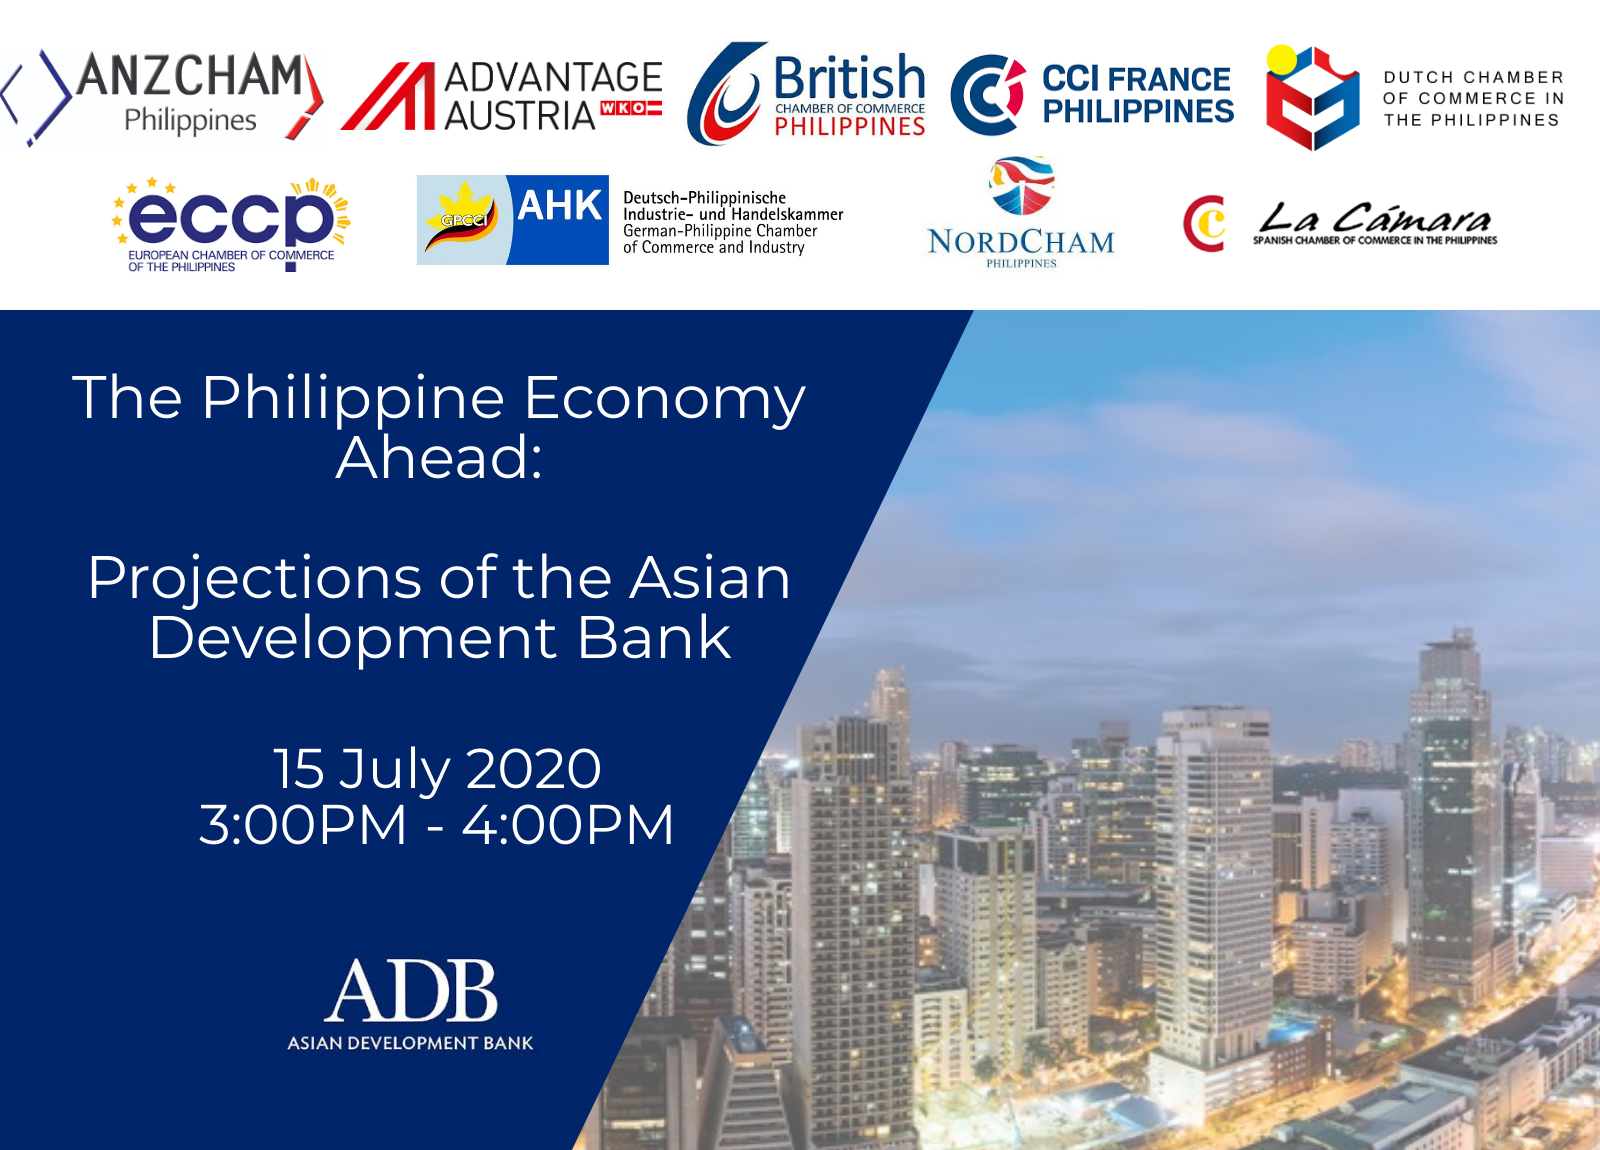 The Philippine Economy Ahead: Projections of the Asian Development Bank